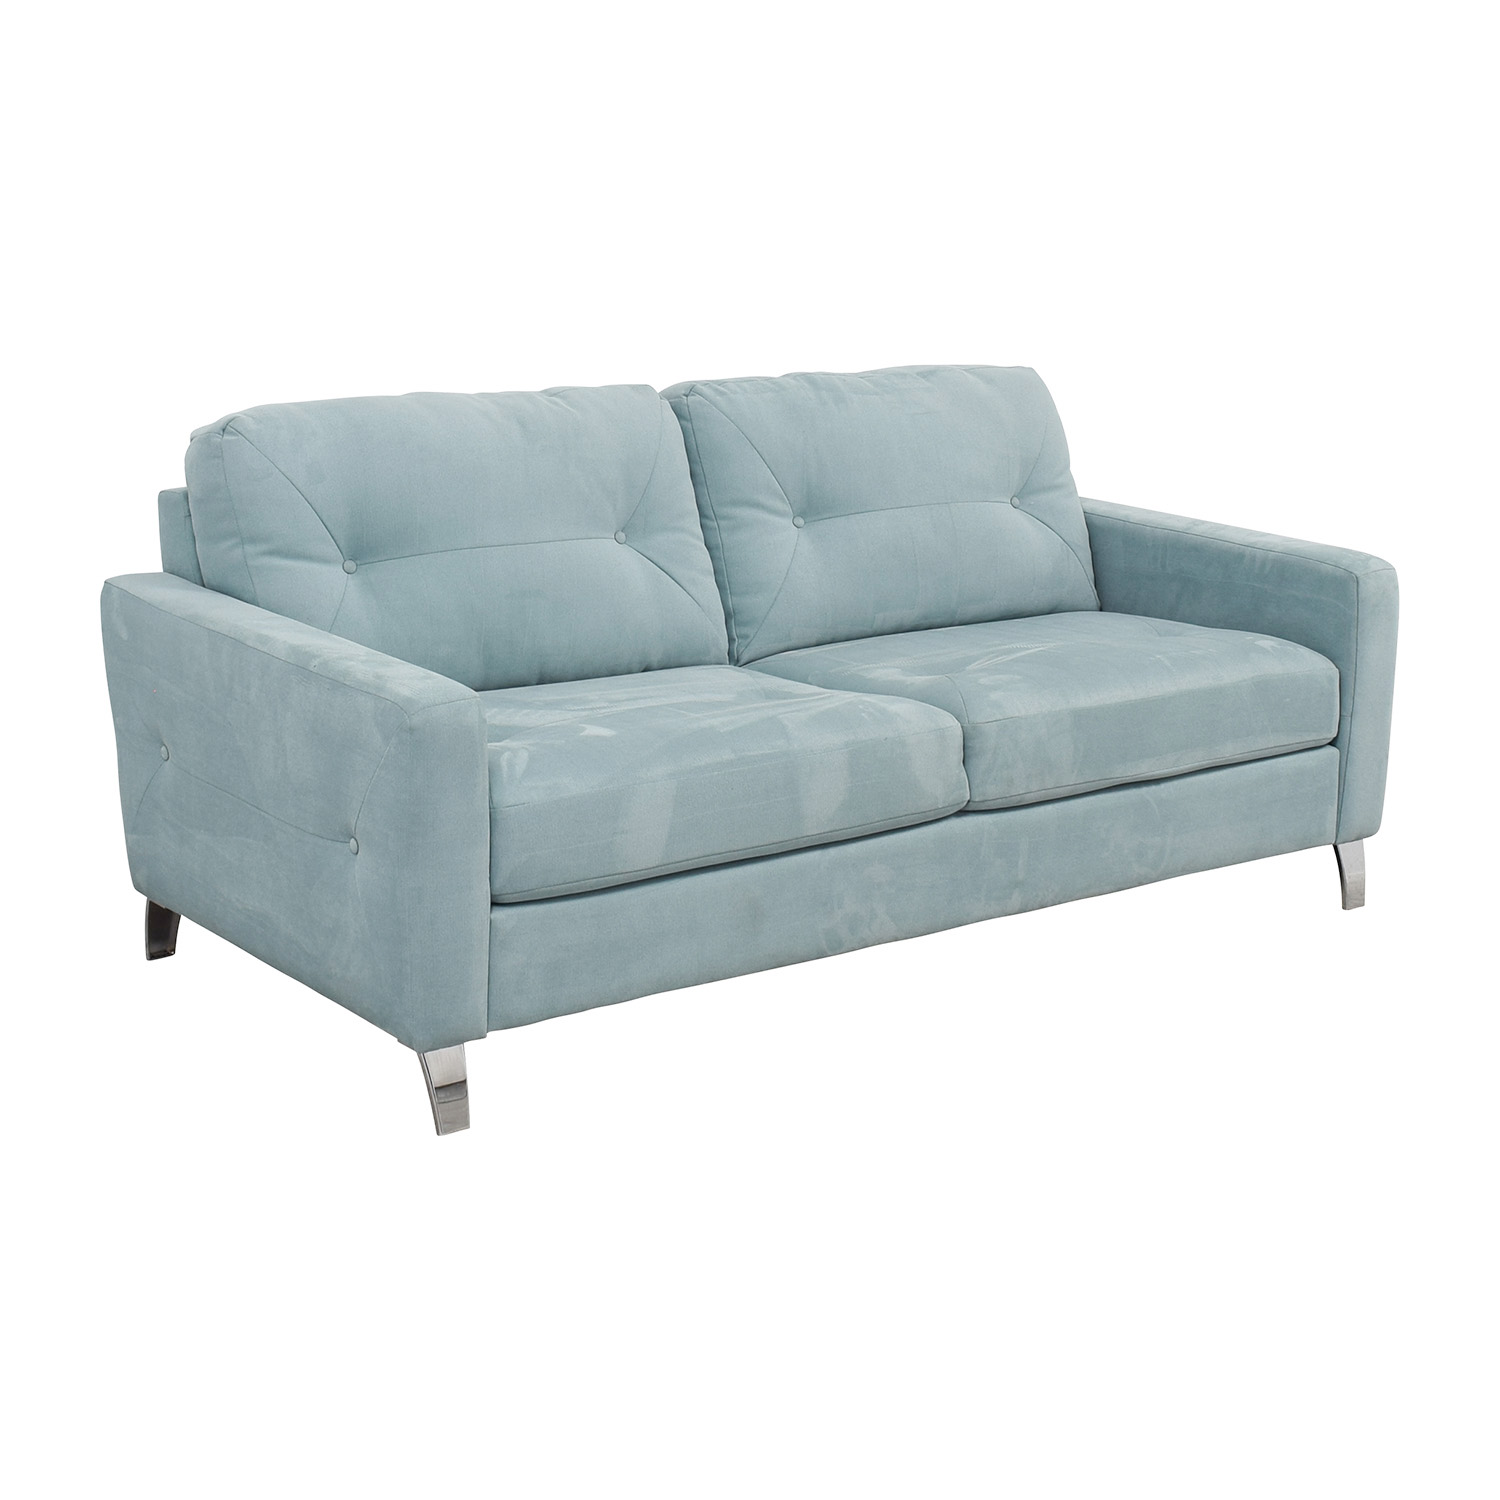 Jensen Sofa Bed Next 62 Off Jensen Lewis Jensen Lewis Sky Blue Semi Tufted Two Cushion Sofa Sofas